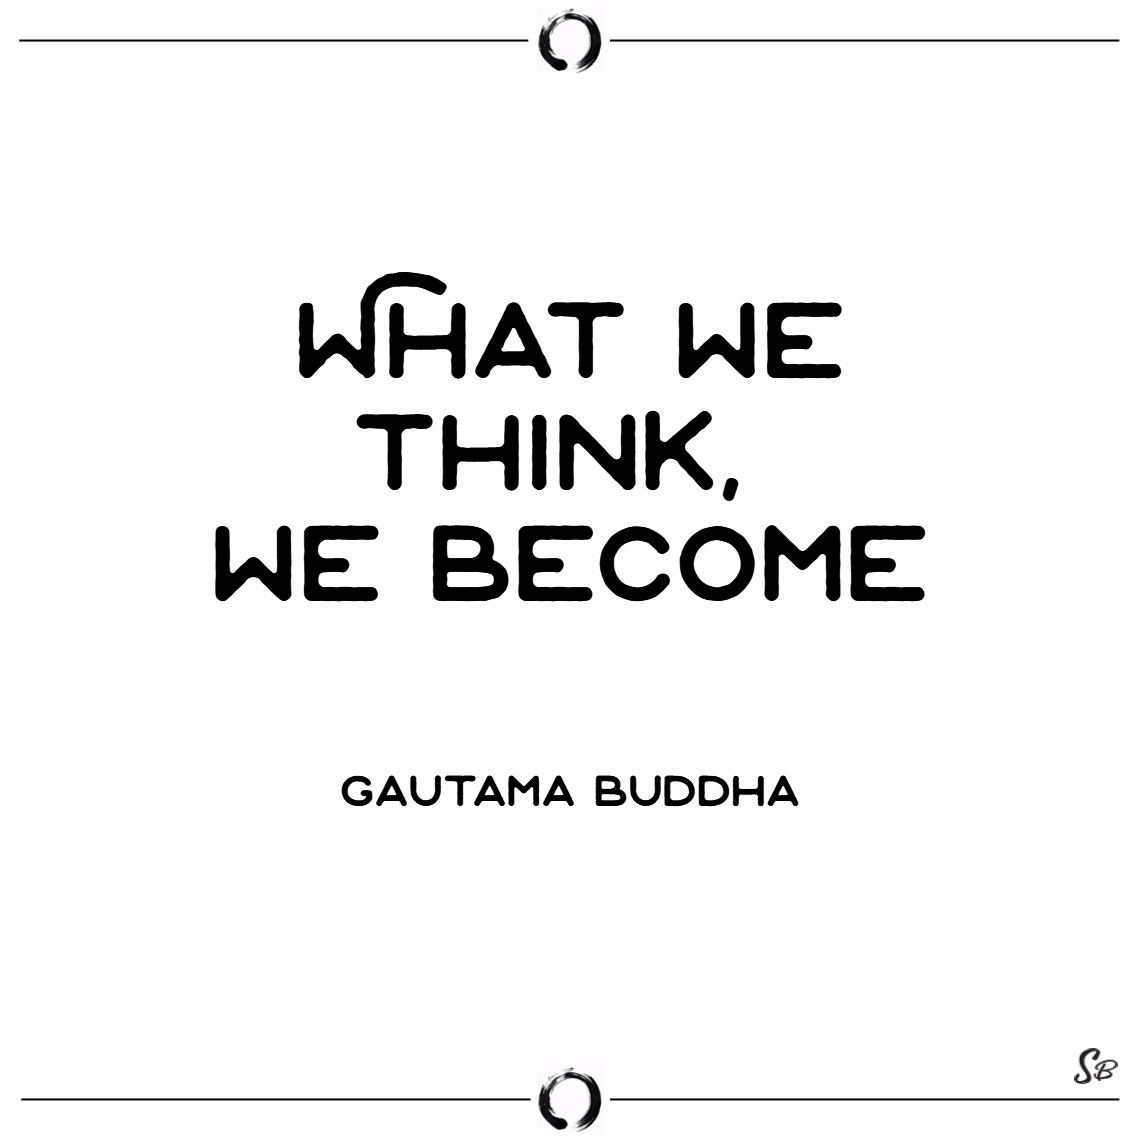 What we think, we become. – gautama buddha